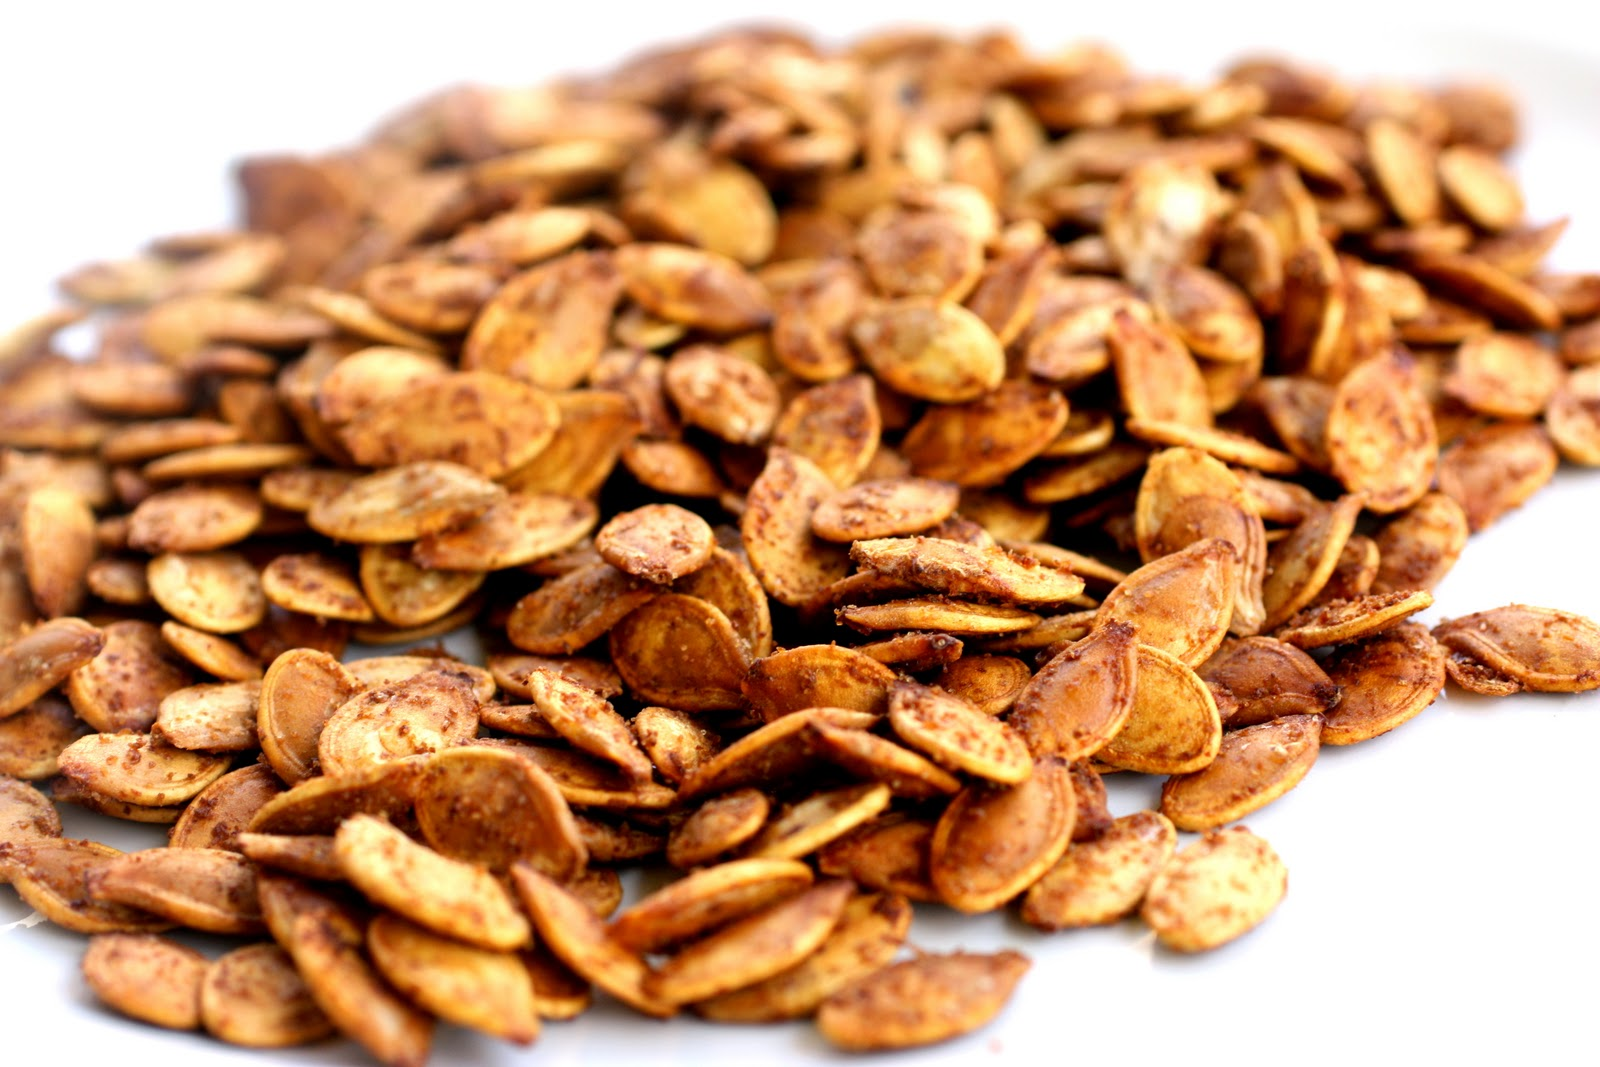 print delicious roasted pumpkin seeds ingredients 2 cups pumpkin seeds